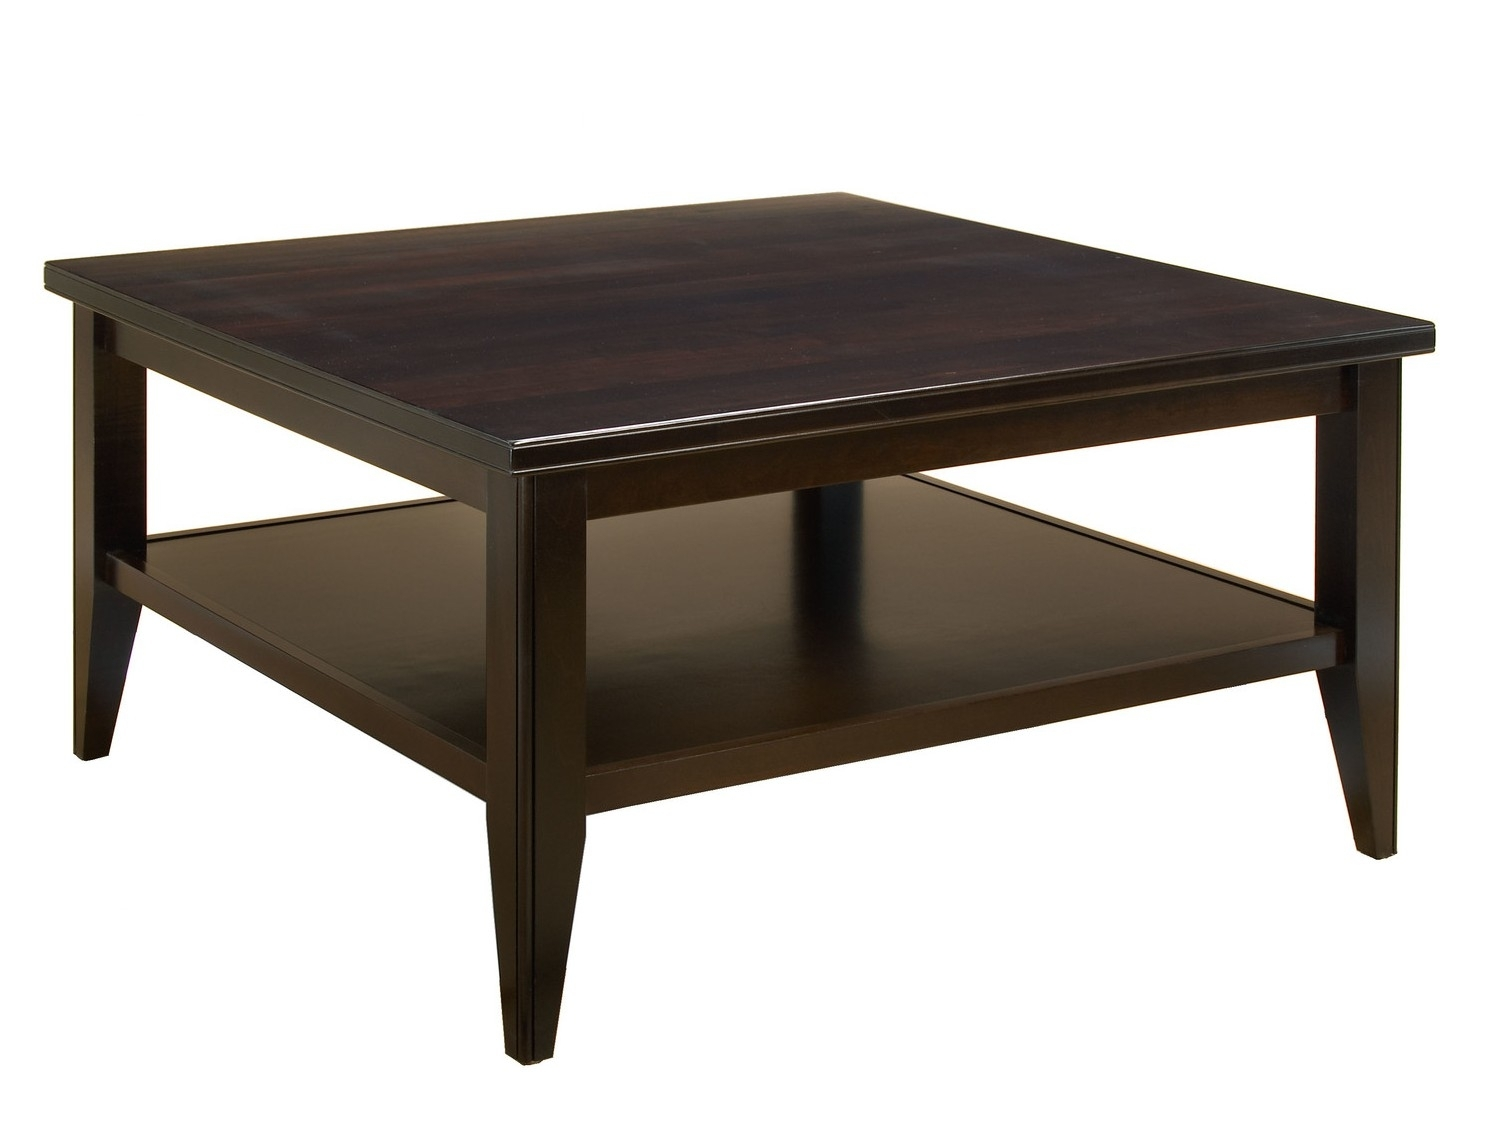 Elegant Traditional Coffee Table With Coffee Table Beautiful Of Throughout Traditional Coffee Tables (Gallery 11 of 30)